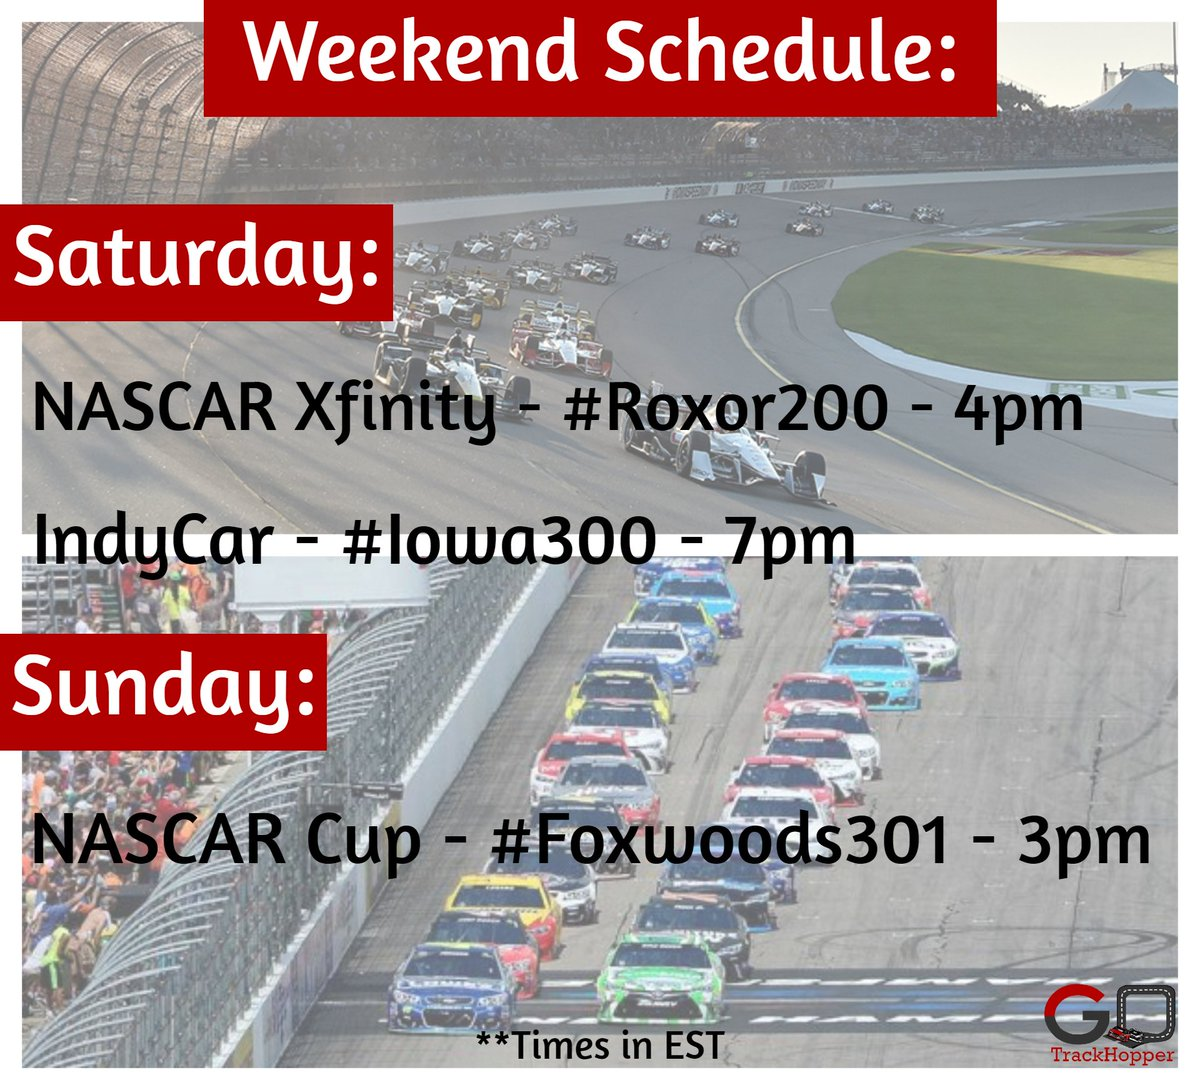 Check out the weekend schedule:  NASCAR Xfinity - #Roxor200 - Sat @ 4pm IndyCar - #Iowa300 - Sat @ 7pm NASCAR Cup - #Foxwoods301 - Sun @ 3pm  **Times in EST  #NASCAR #IndyCar #xfinity #NXS #MENCS #MonsterEnergy #NTTIndyCar #weekend #racing https://t.co/9wwQ3ekq4v